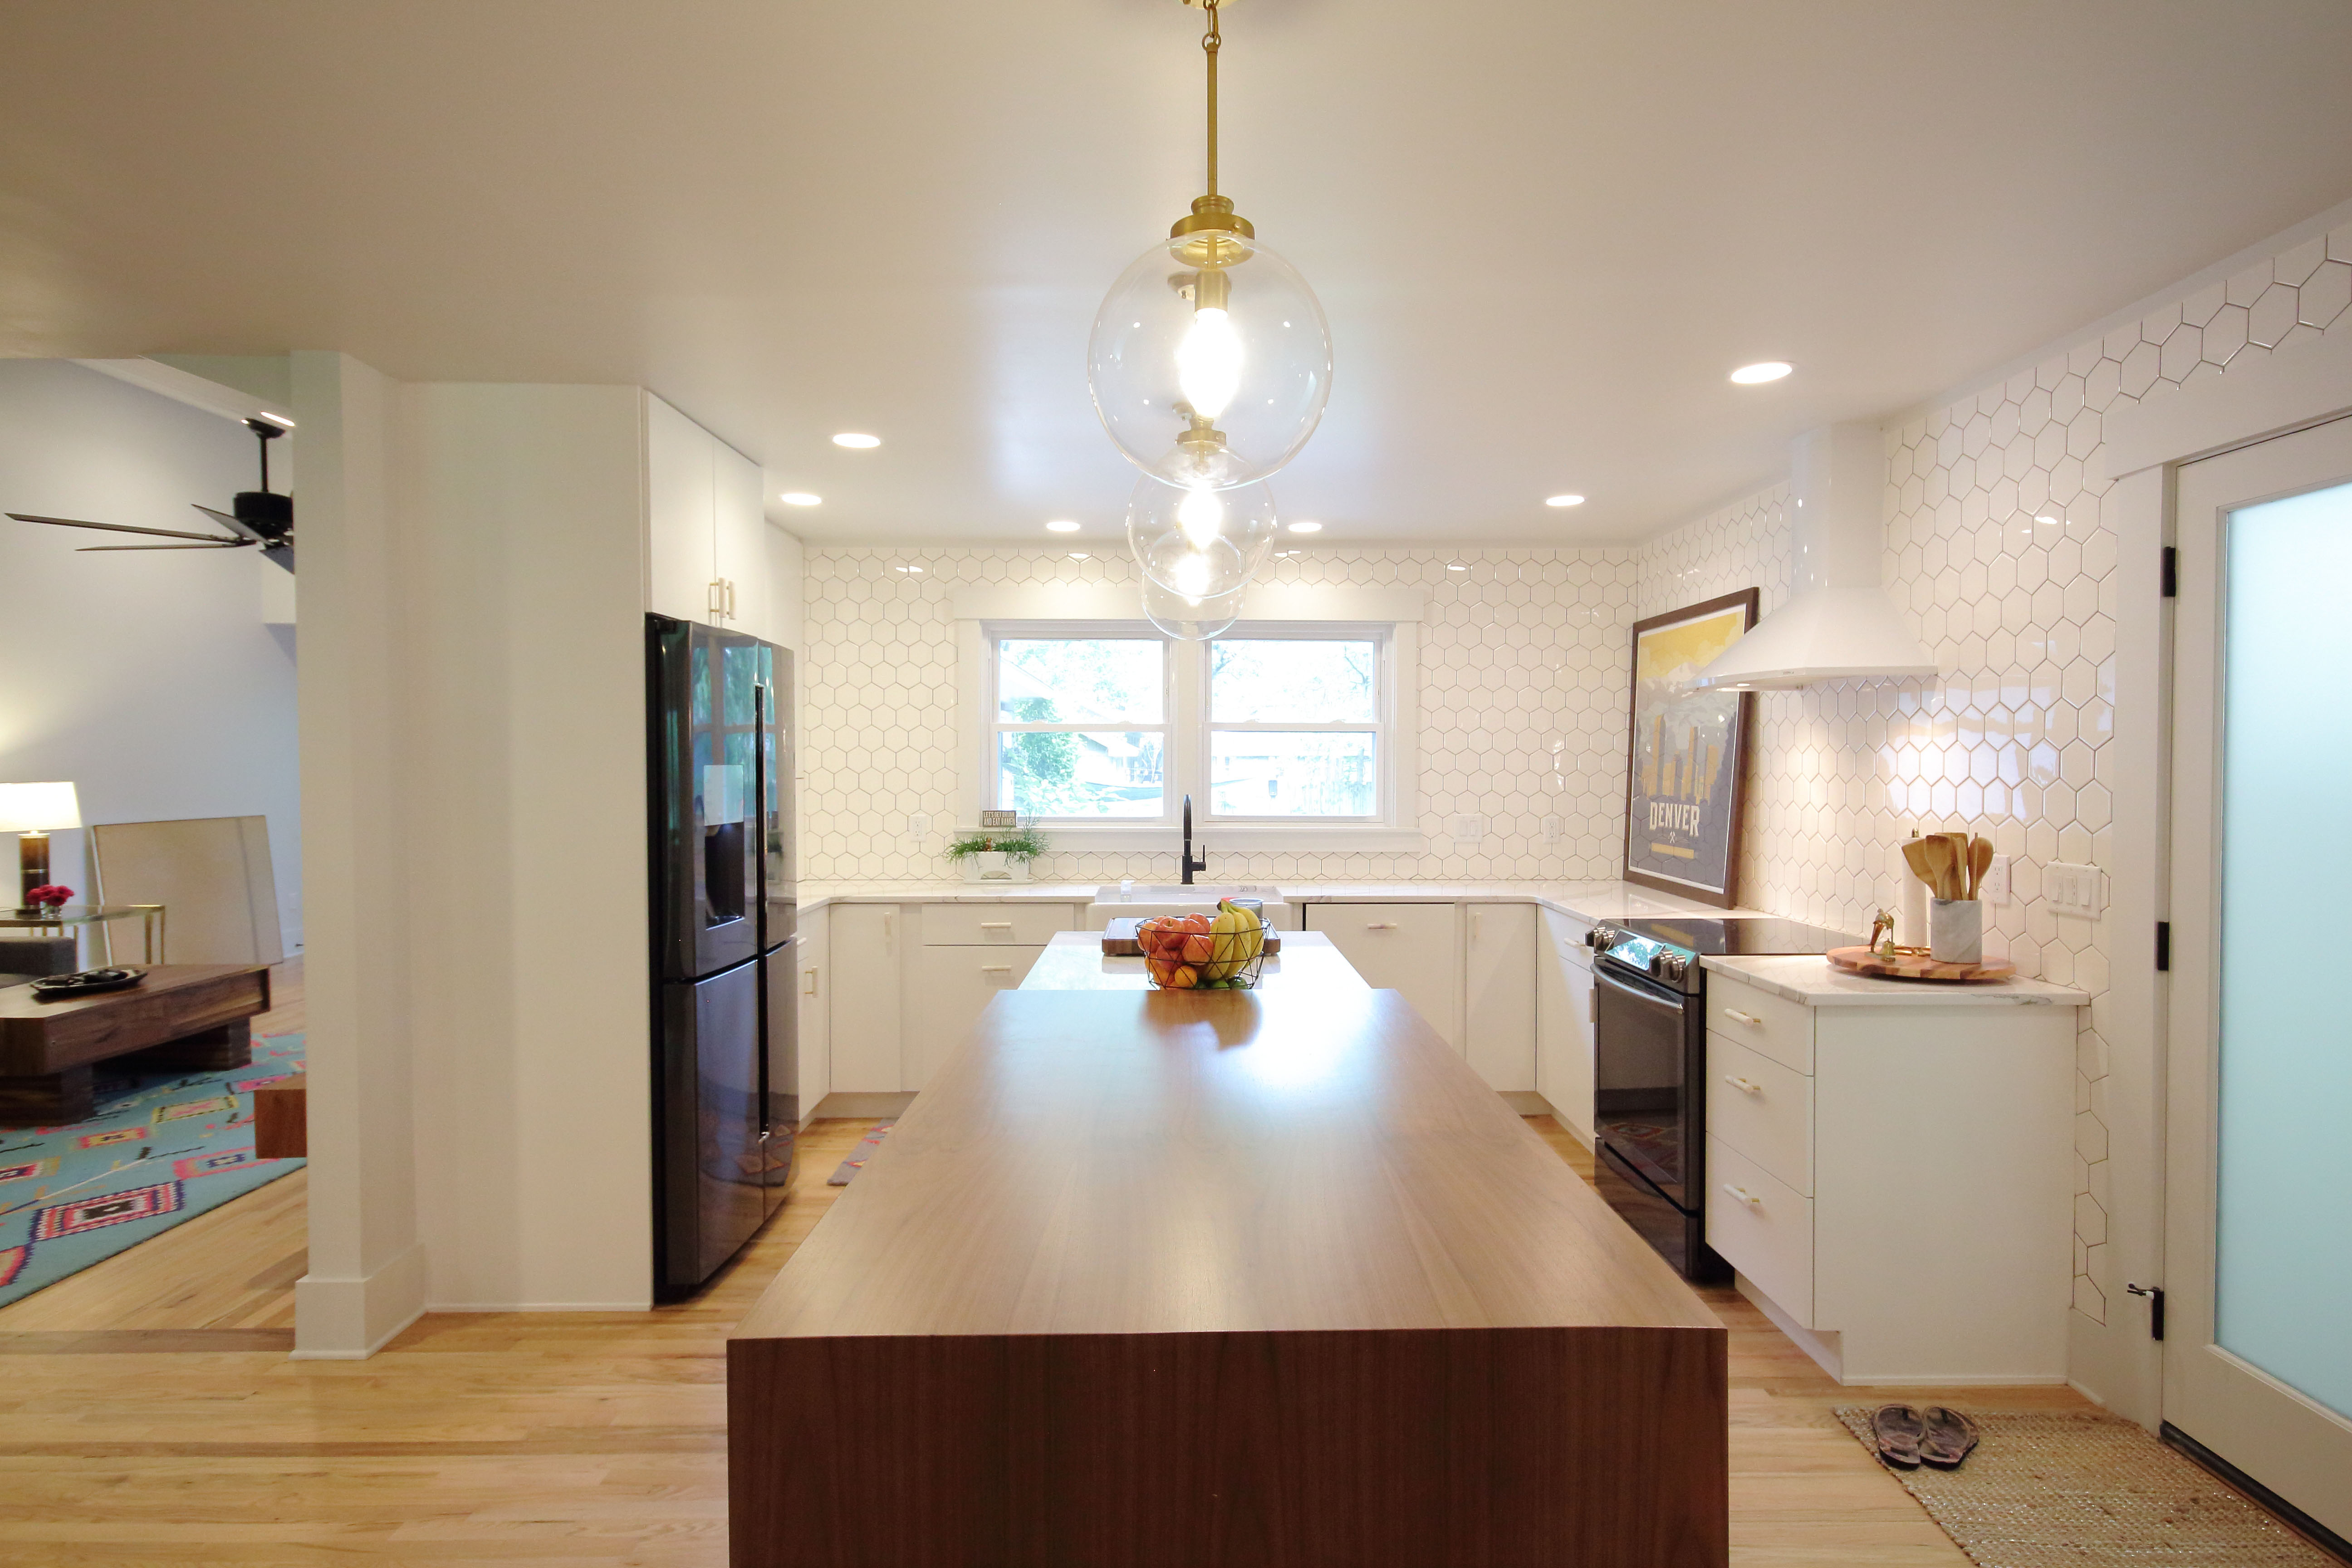 remodeled kitchen project with wood floors